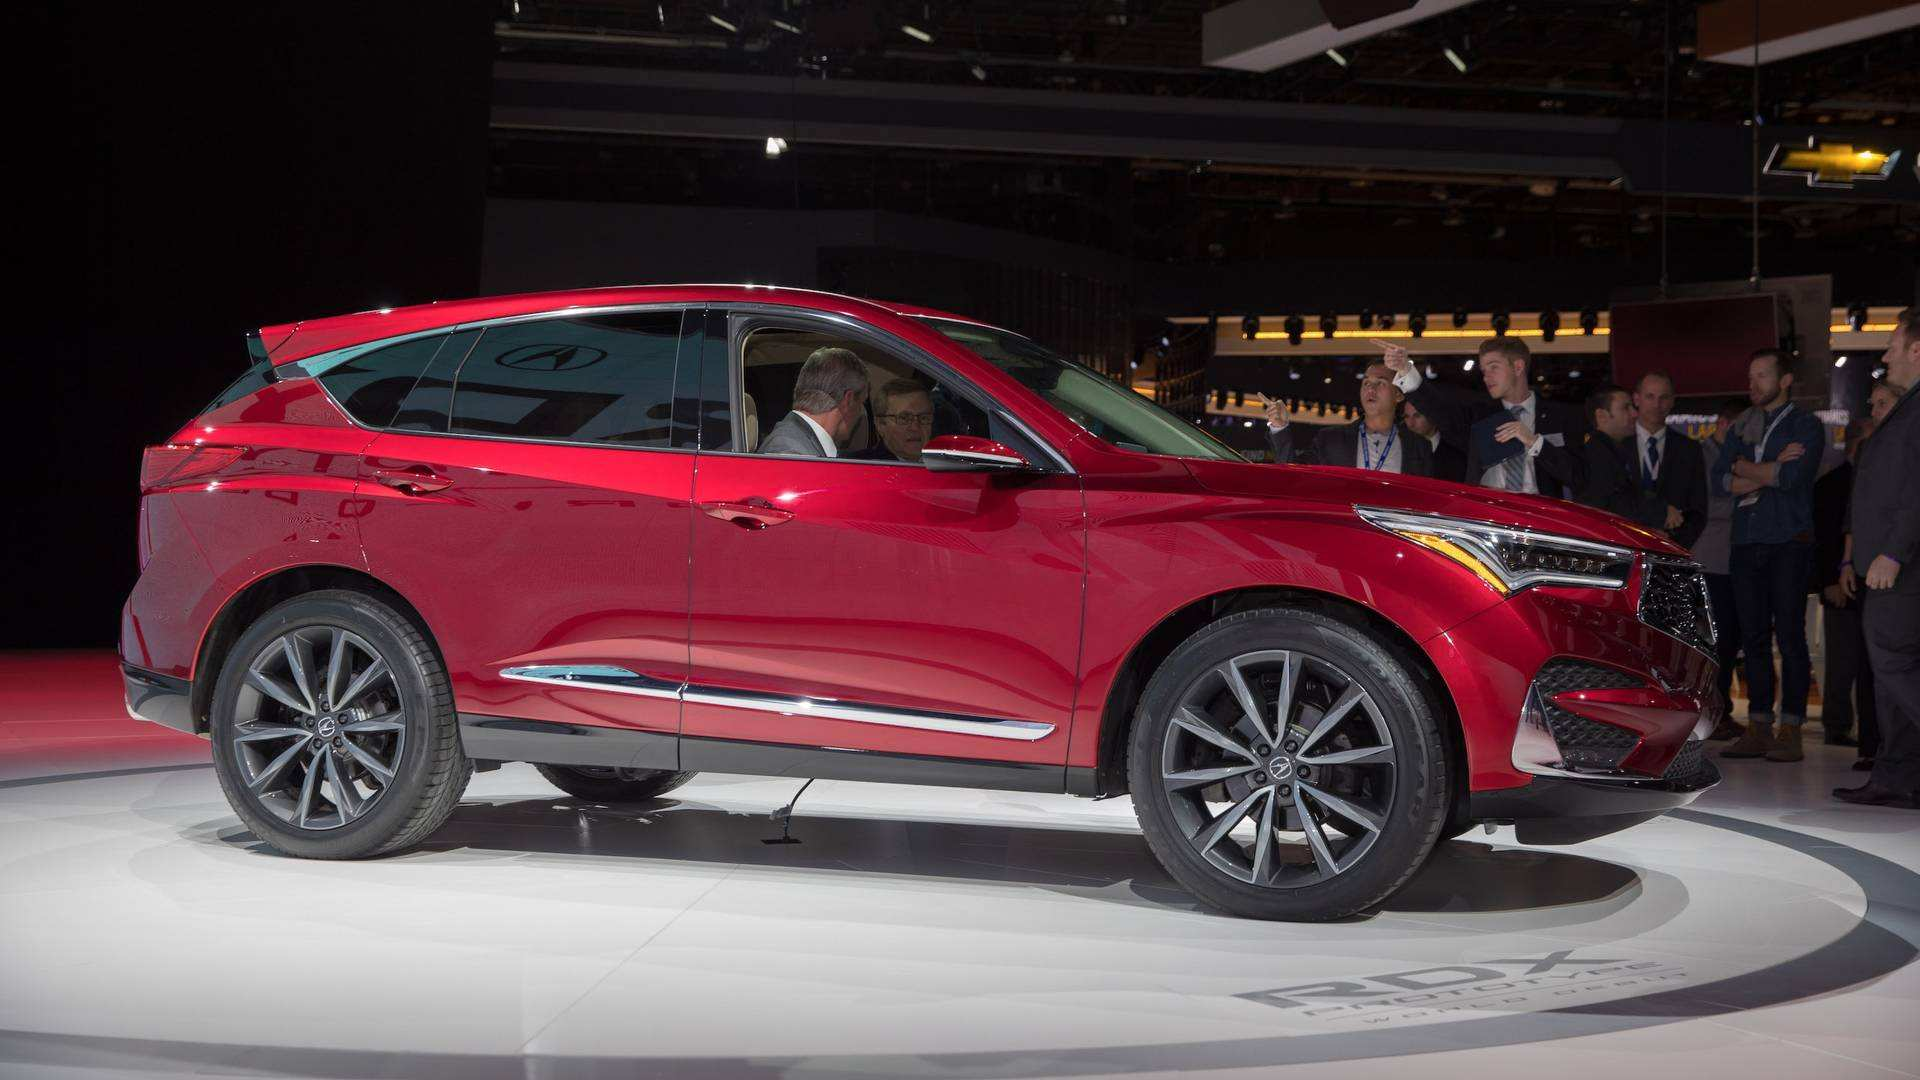 37 Concept of 2019 Acura Rdx Preview Redesign by 2019 Acura Rdx Preview